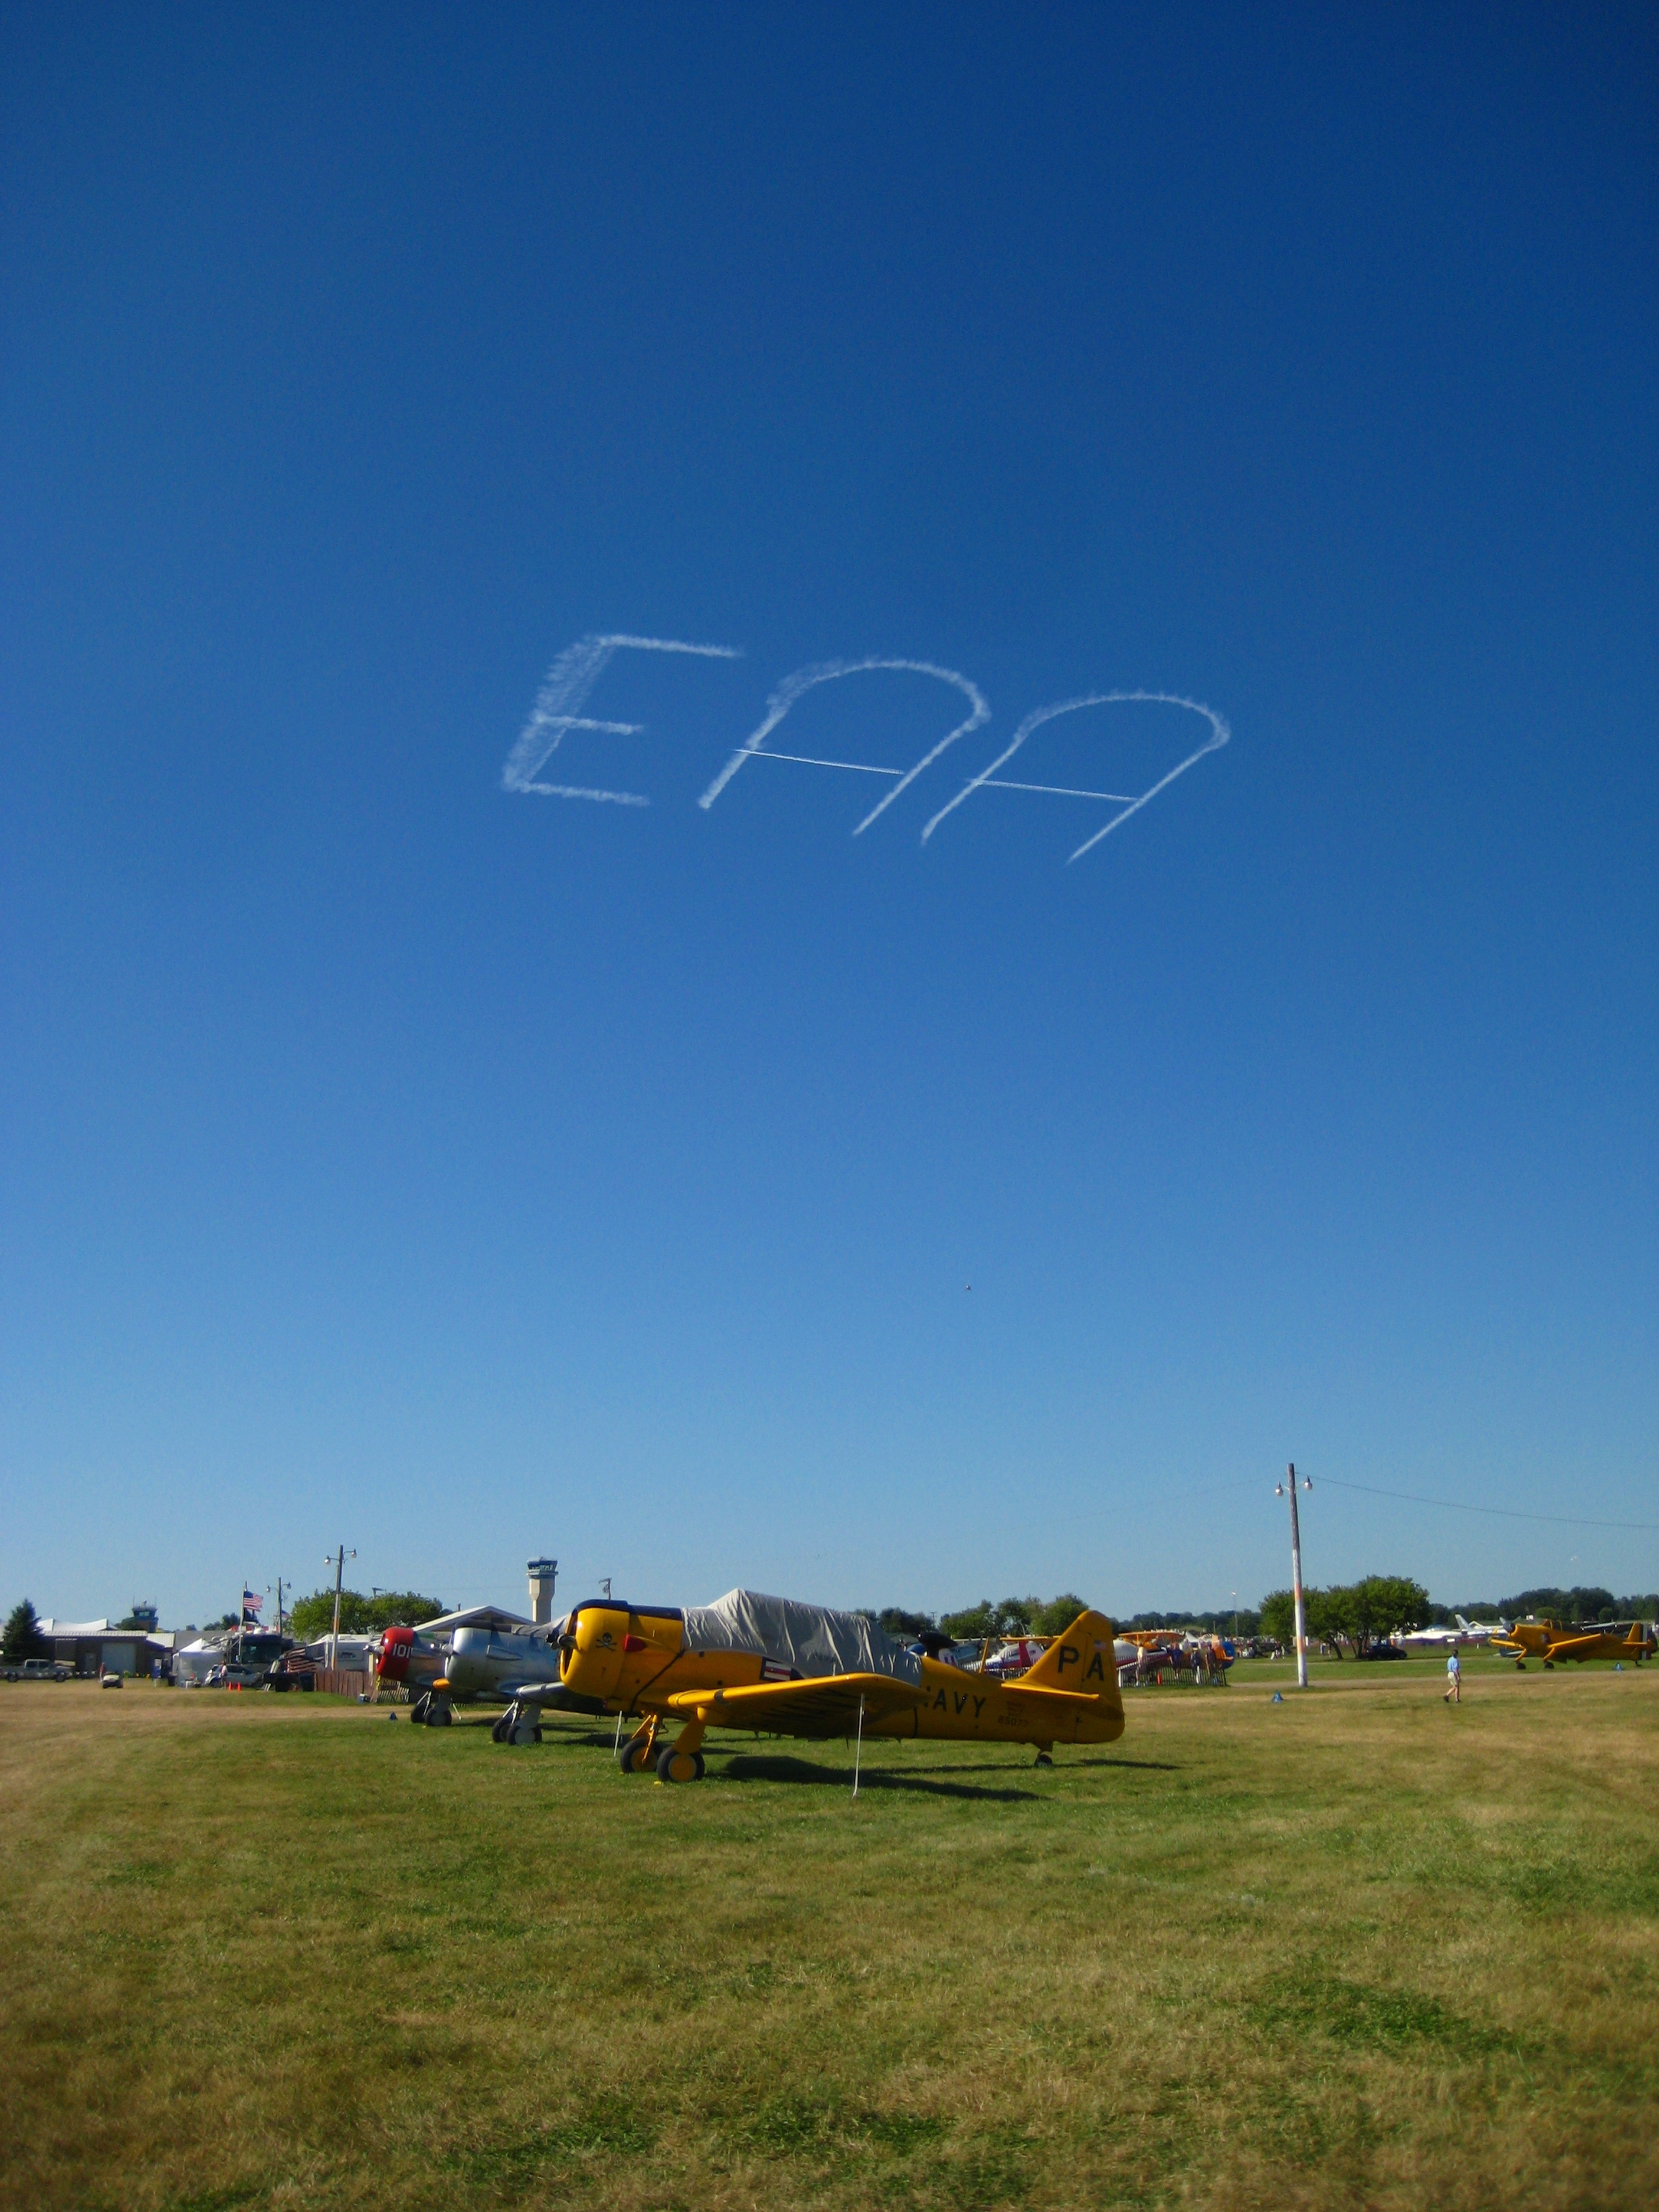 Skywriting Wikipedia